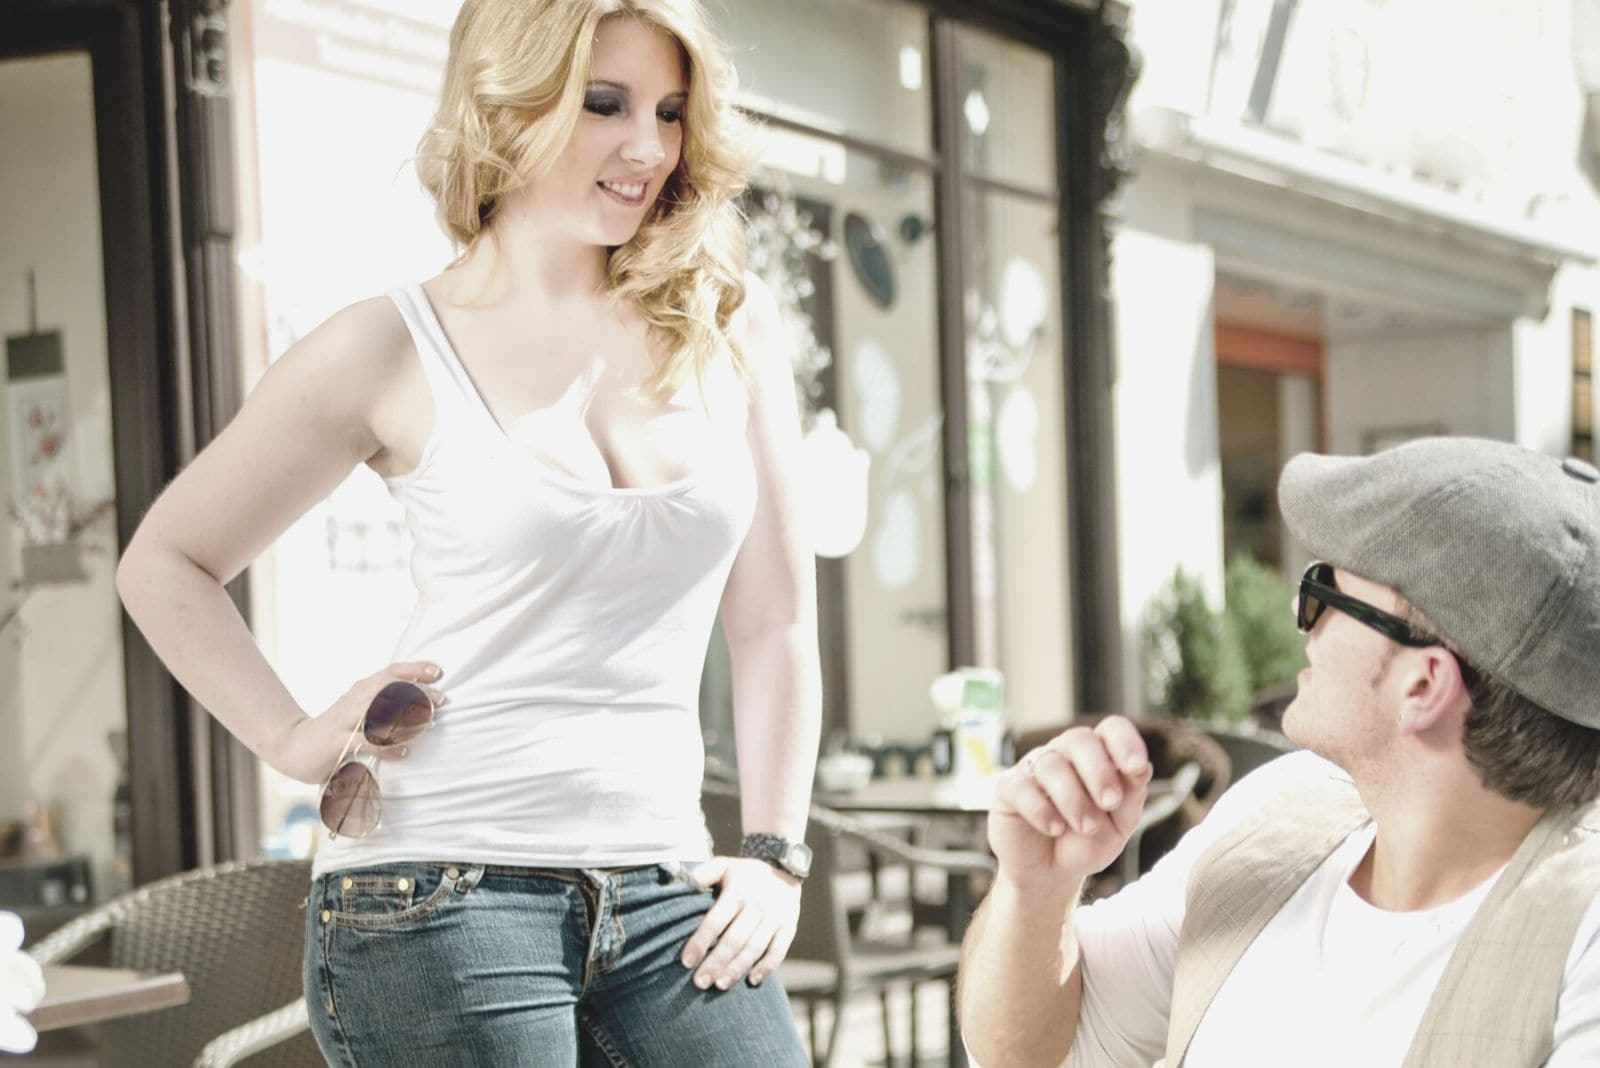 cropped image of sexy woman in white tank top meeting a man in an outdoor cafe